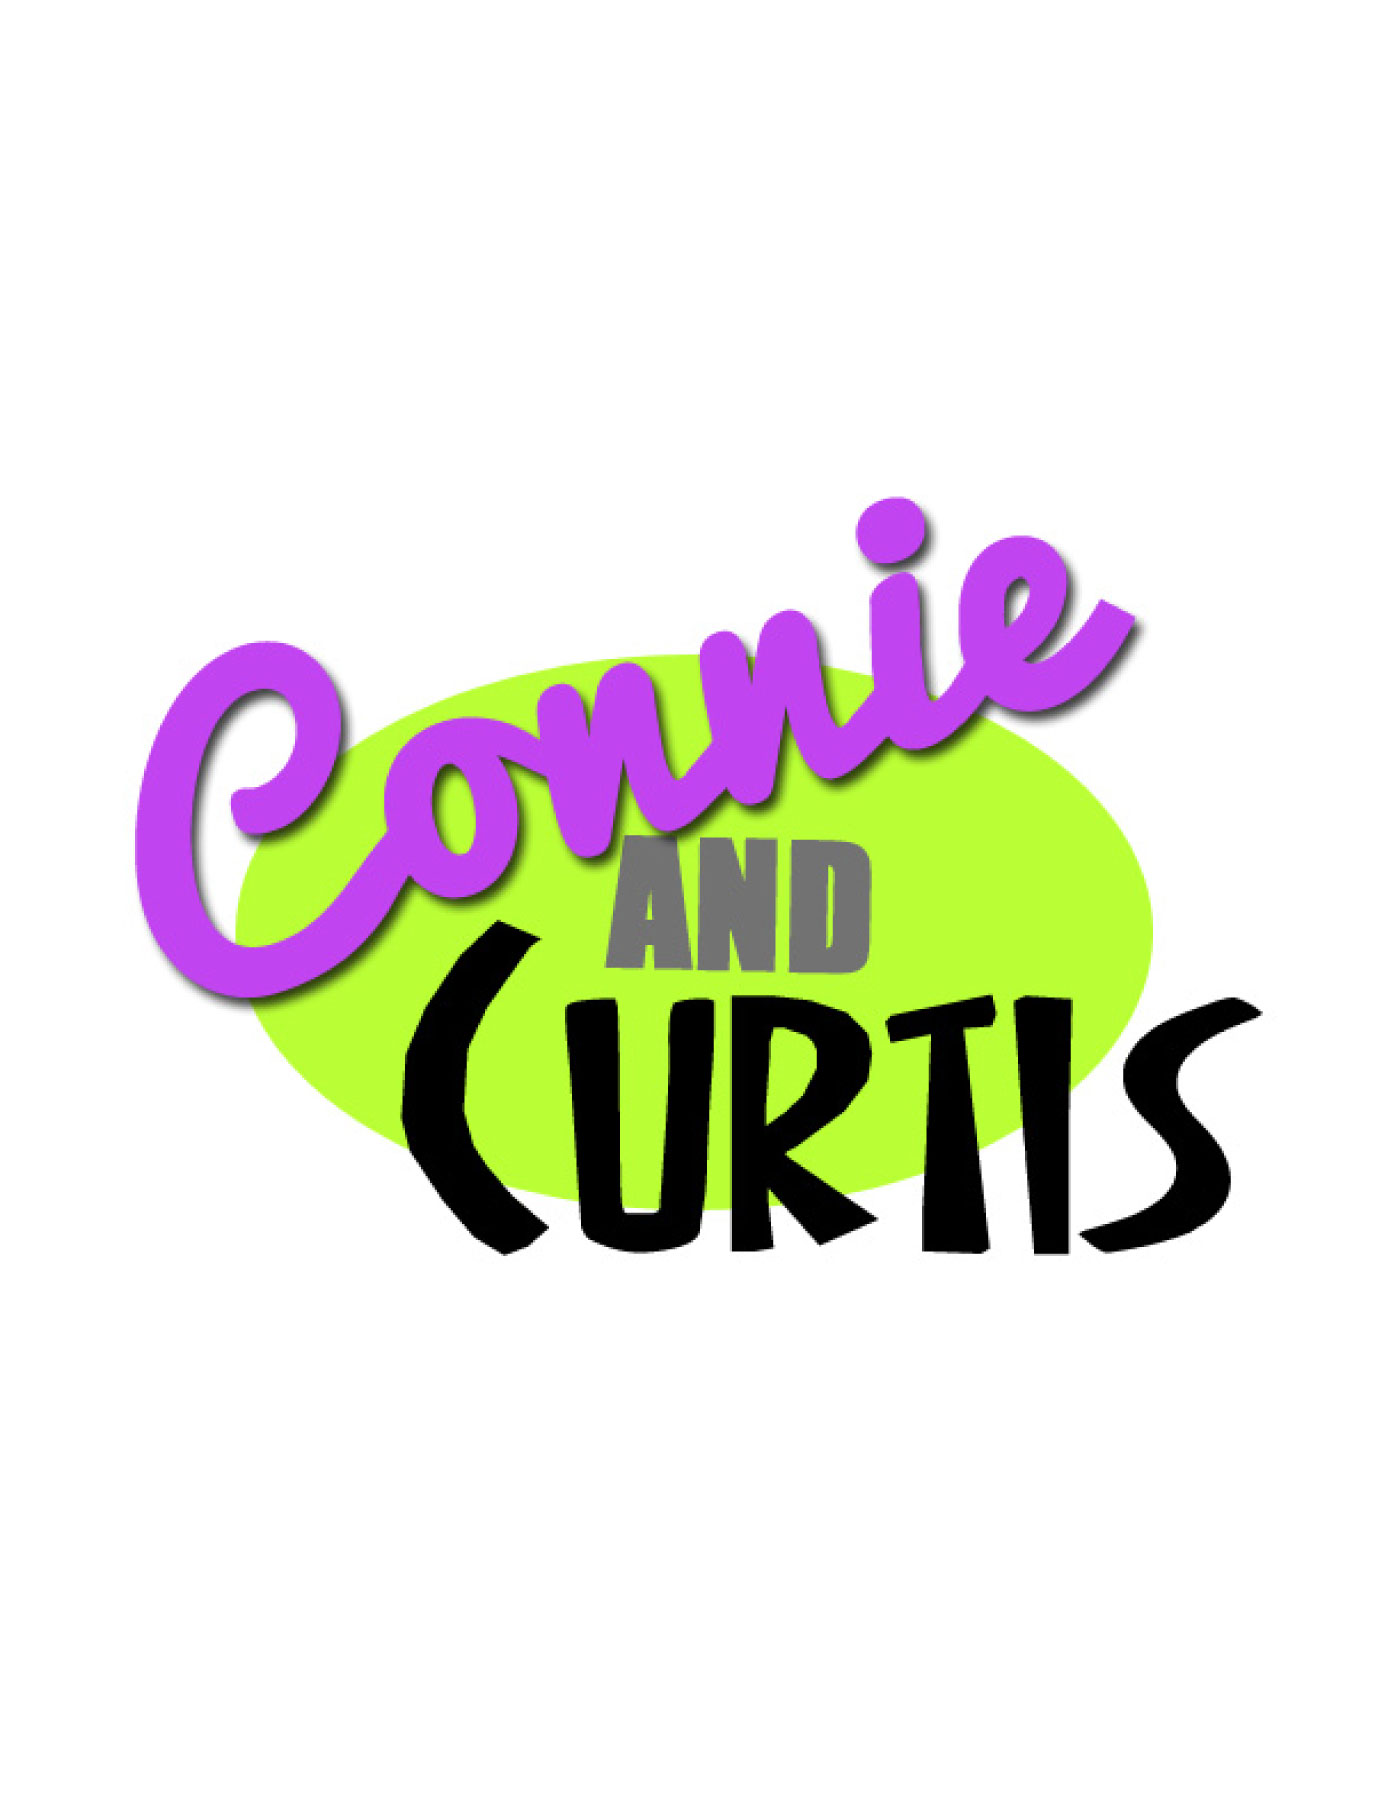 Connie and Curtis